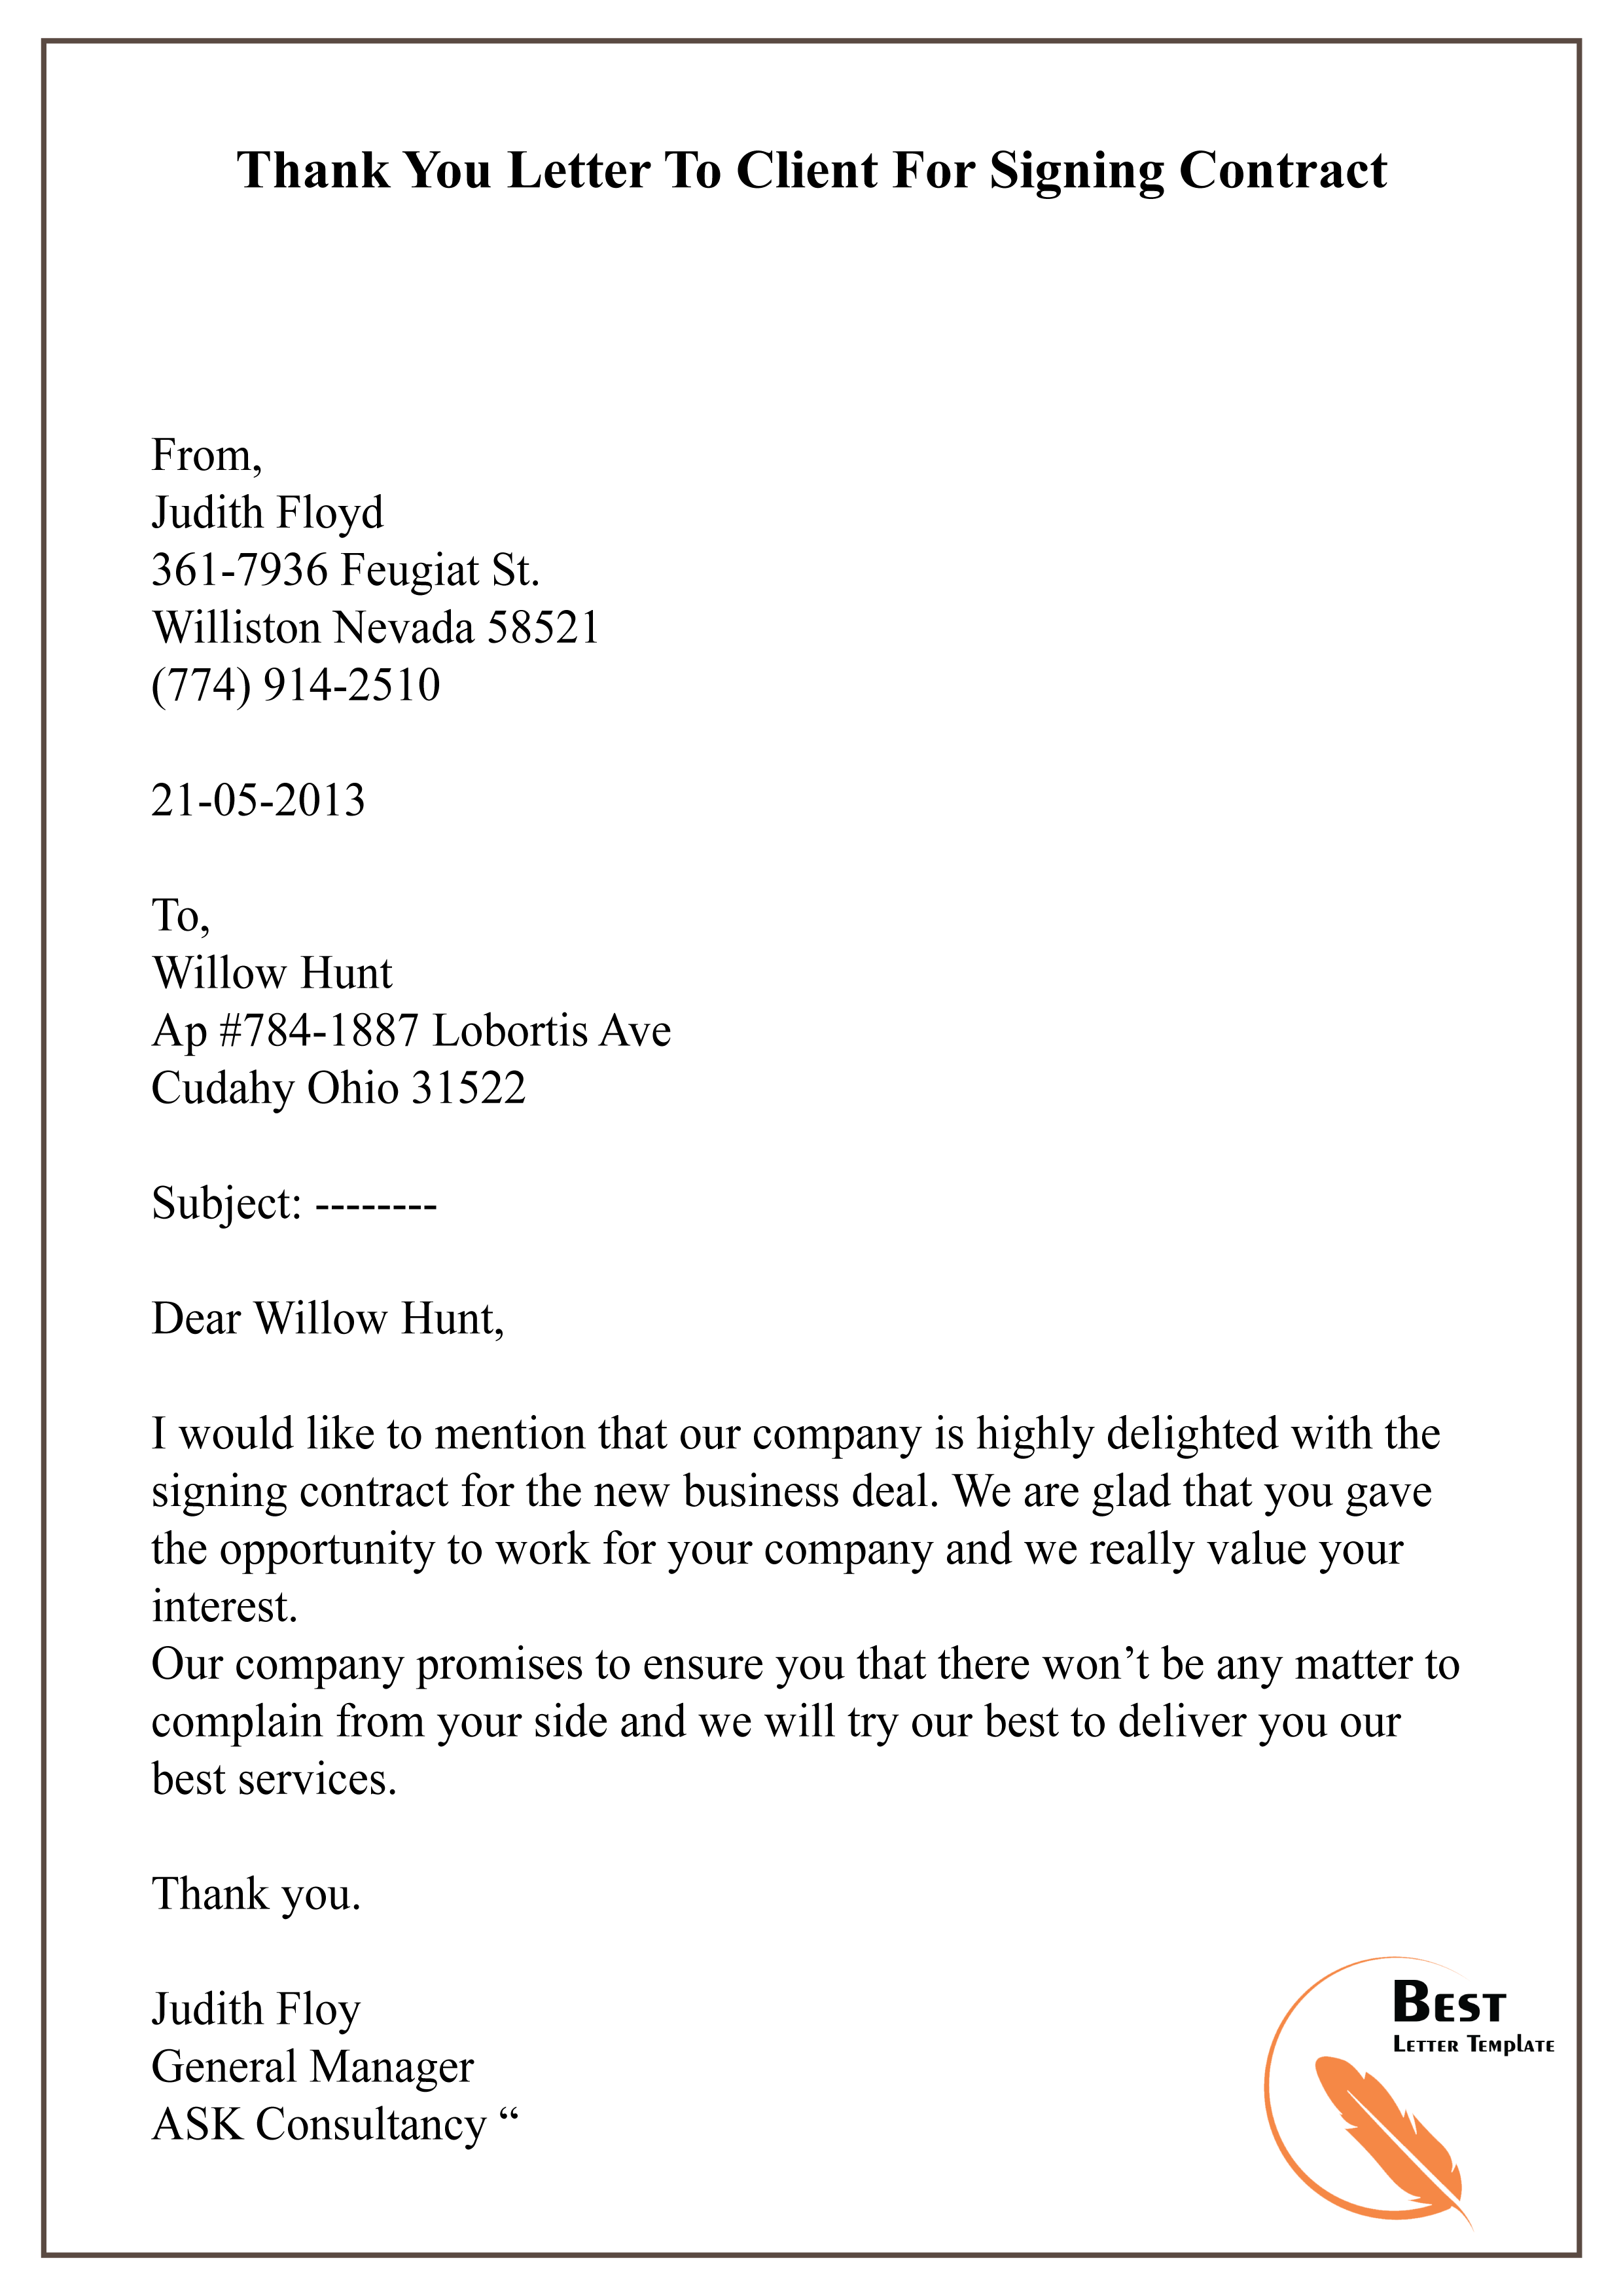 Thank You Letter To Client For Business.Thank You Letter To Client For Signing Contract 01 Best